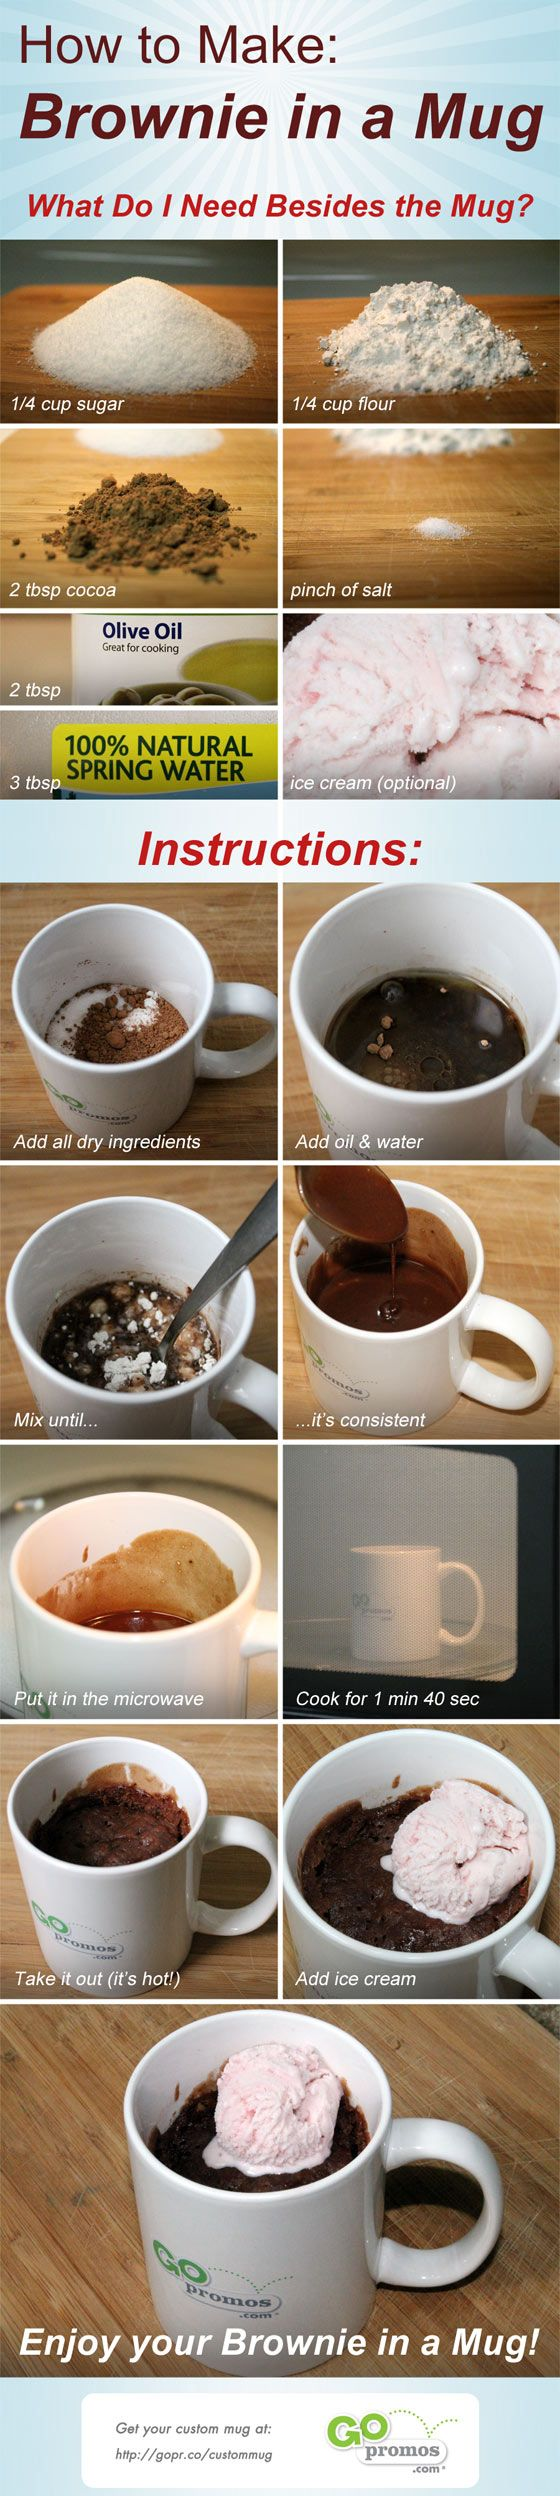 Brownie in a Mug! Whoa! Can't wait to try this one! No butter or egg either. Unbelievable!